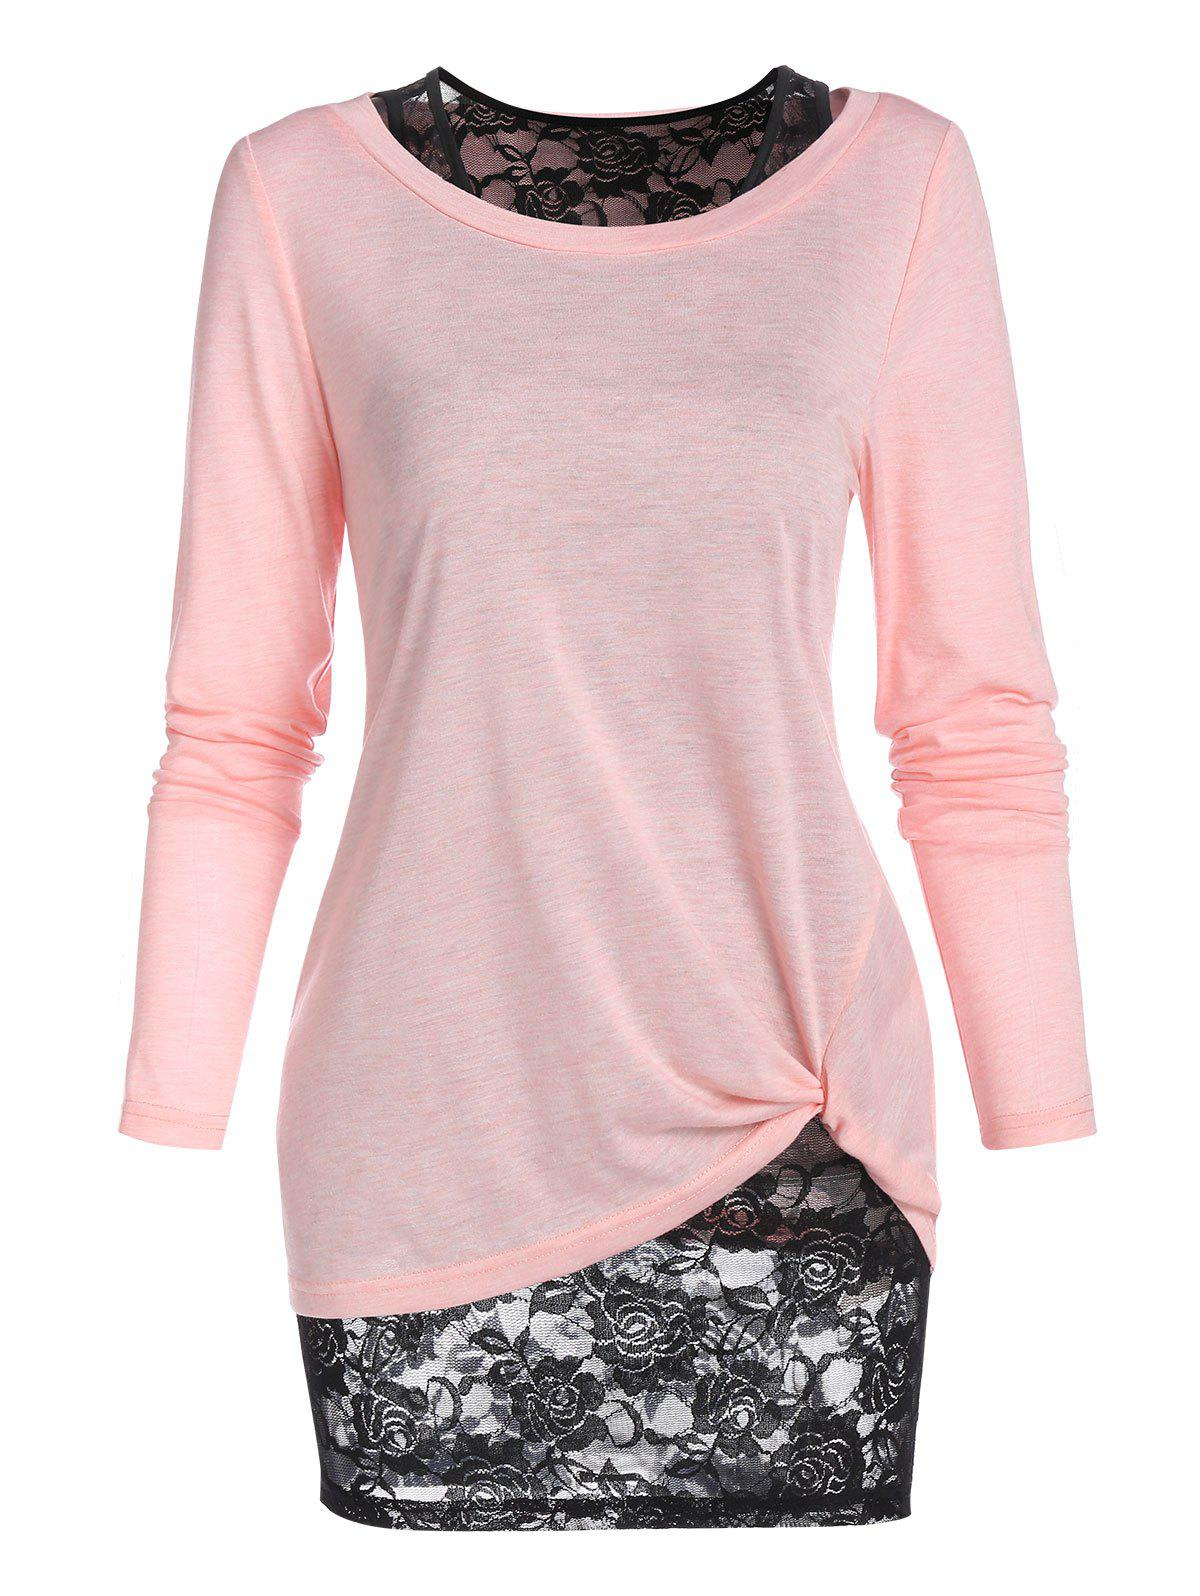 Shop Long Sleeve Twisted T-shirt and Flower Lace Tank Top